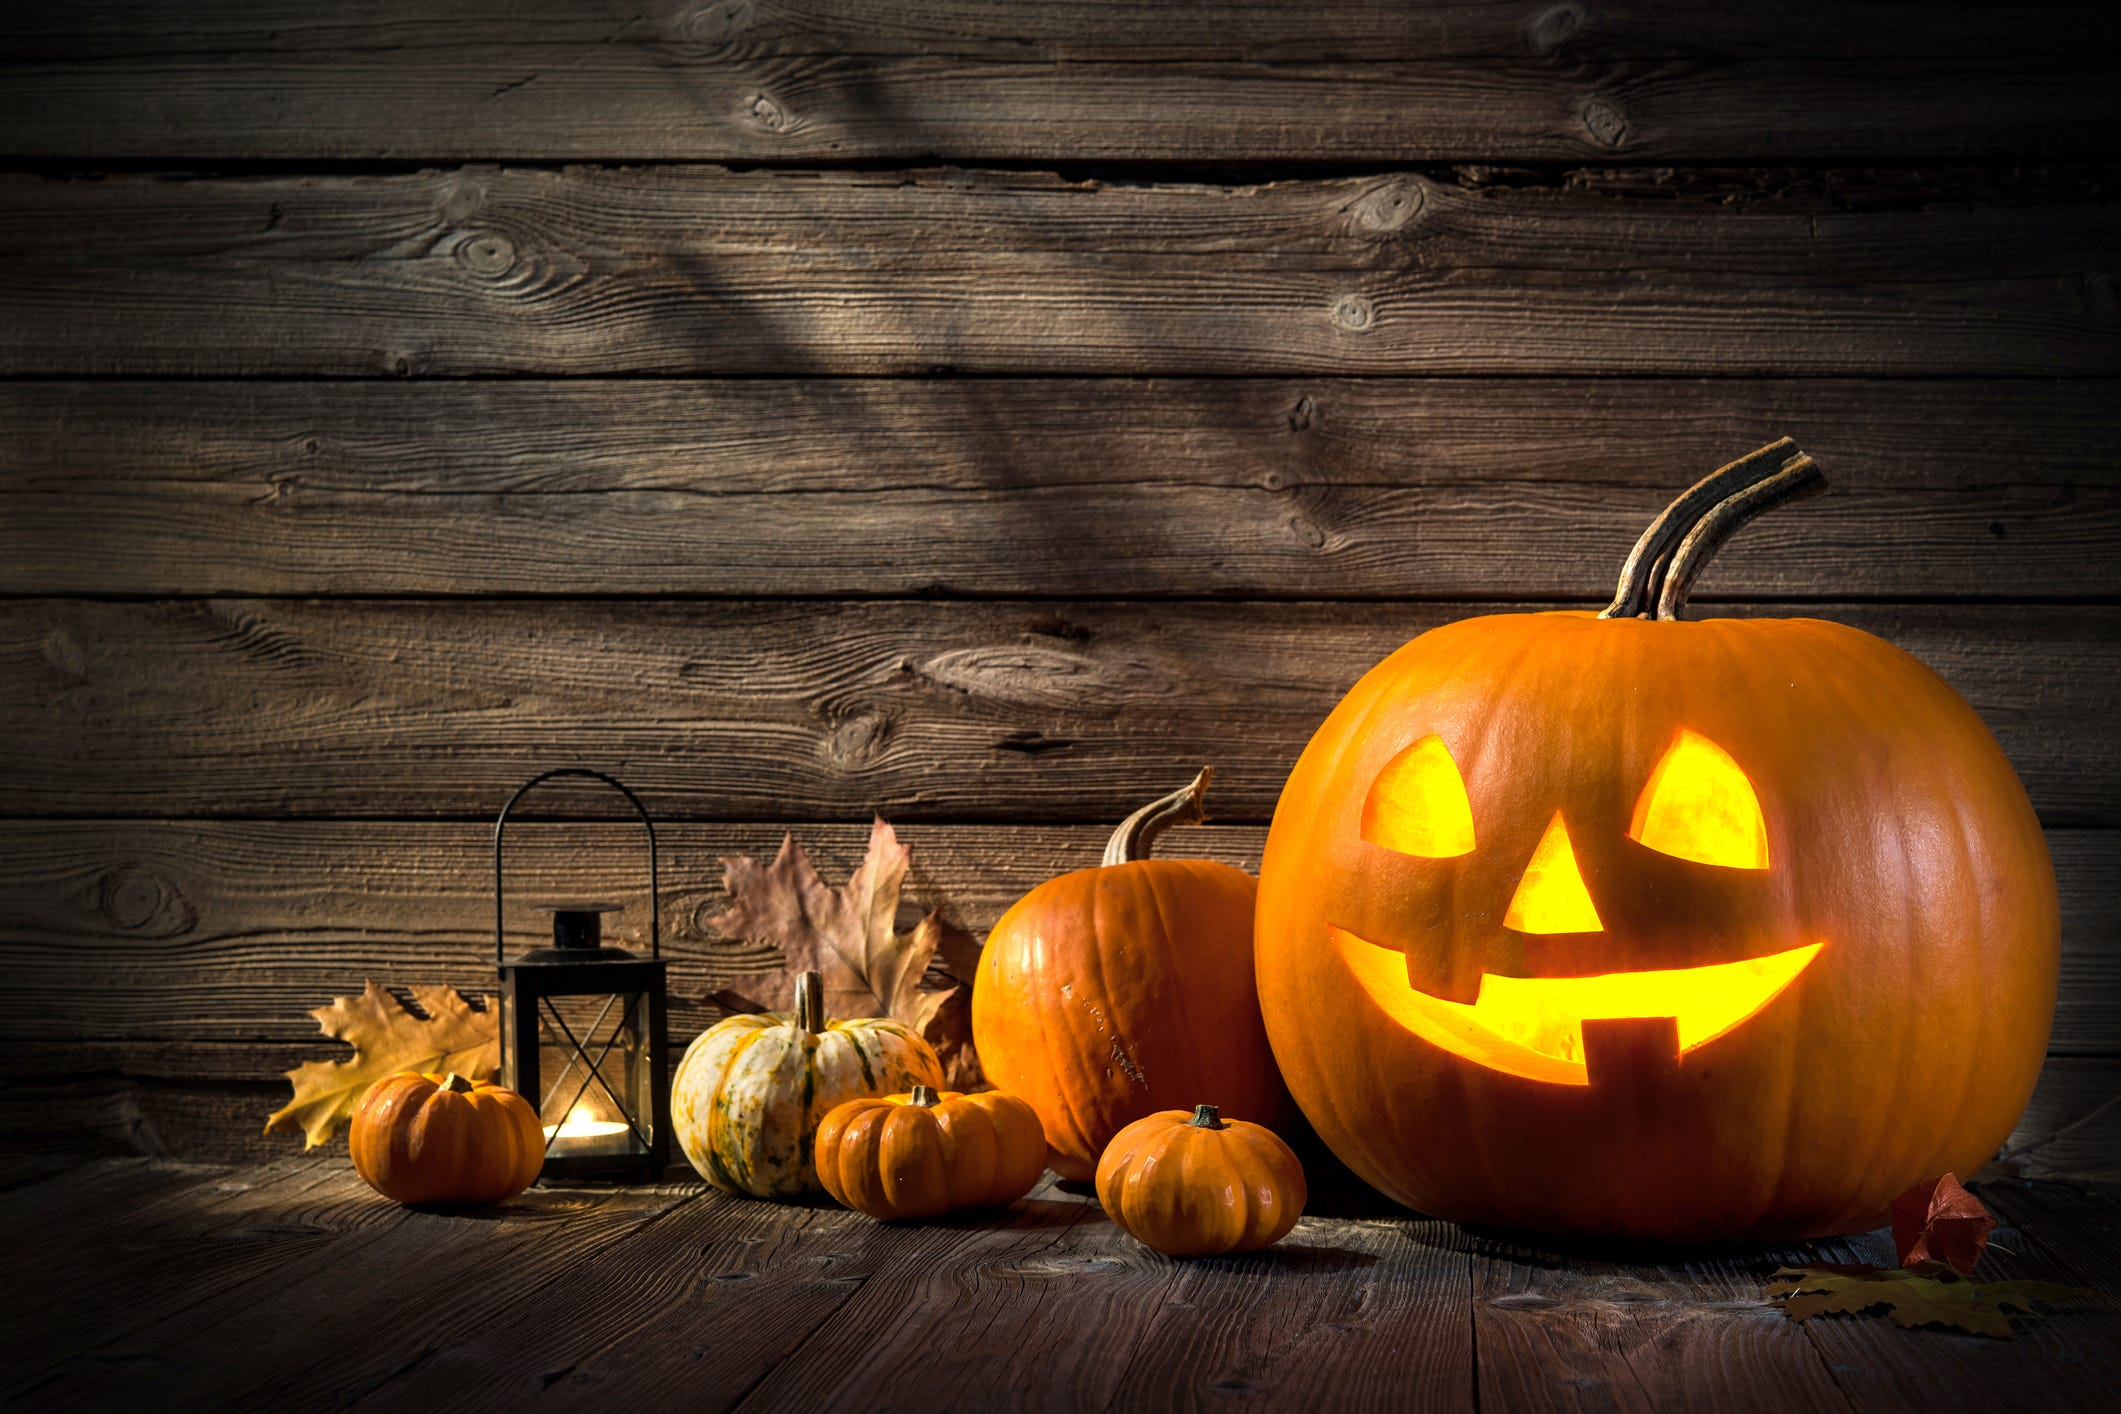 How to pick the best pumpkin for carving